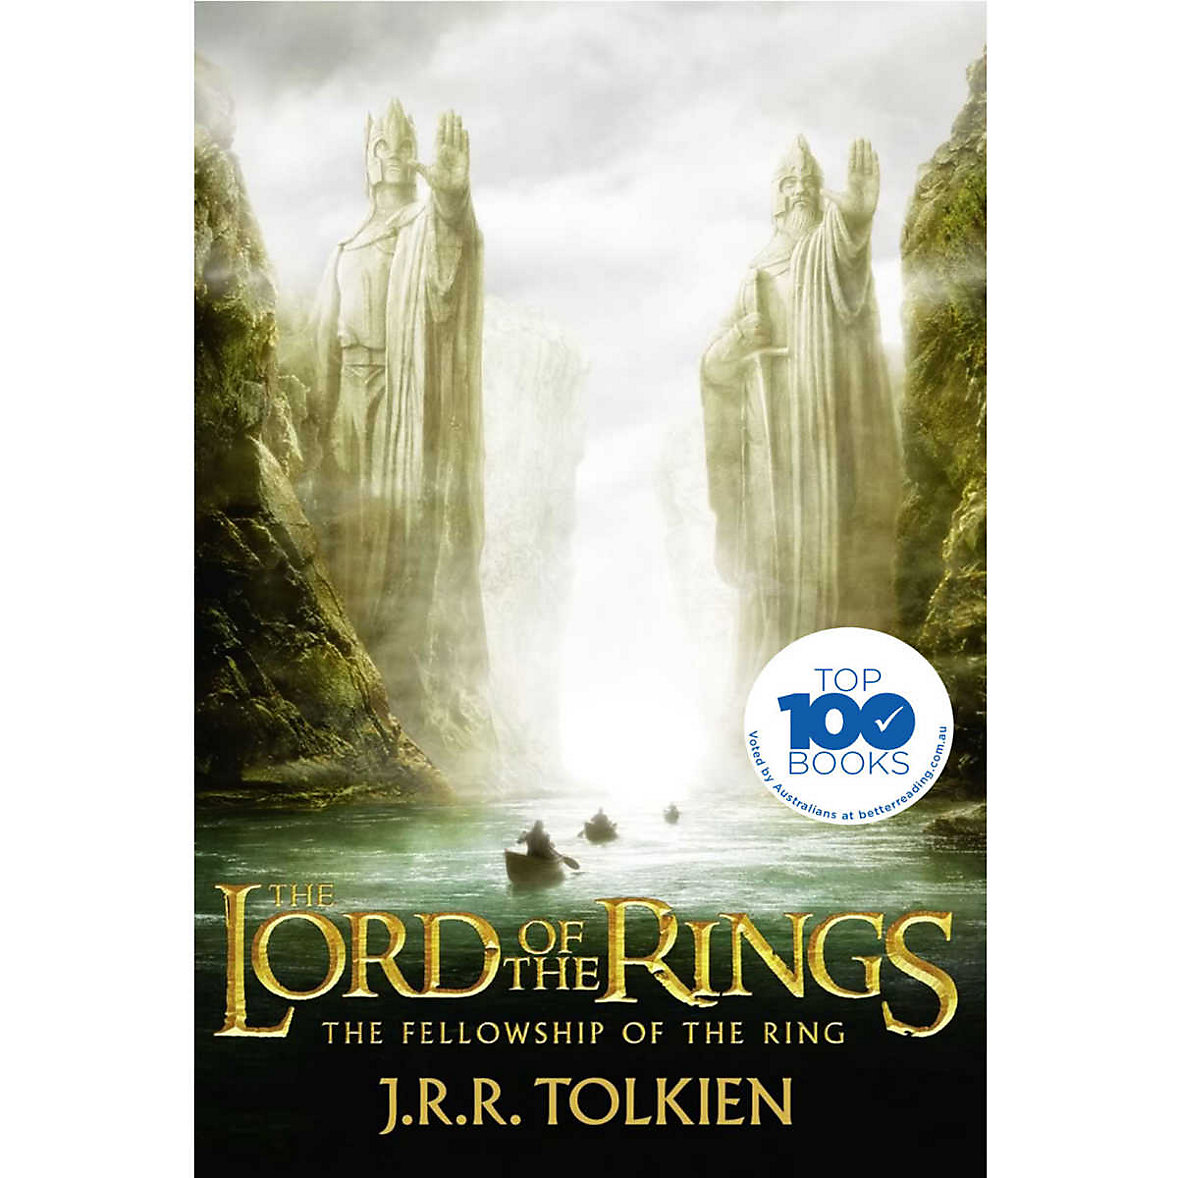 Lord of the Rings - J.R.R. Tolkein